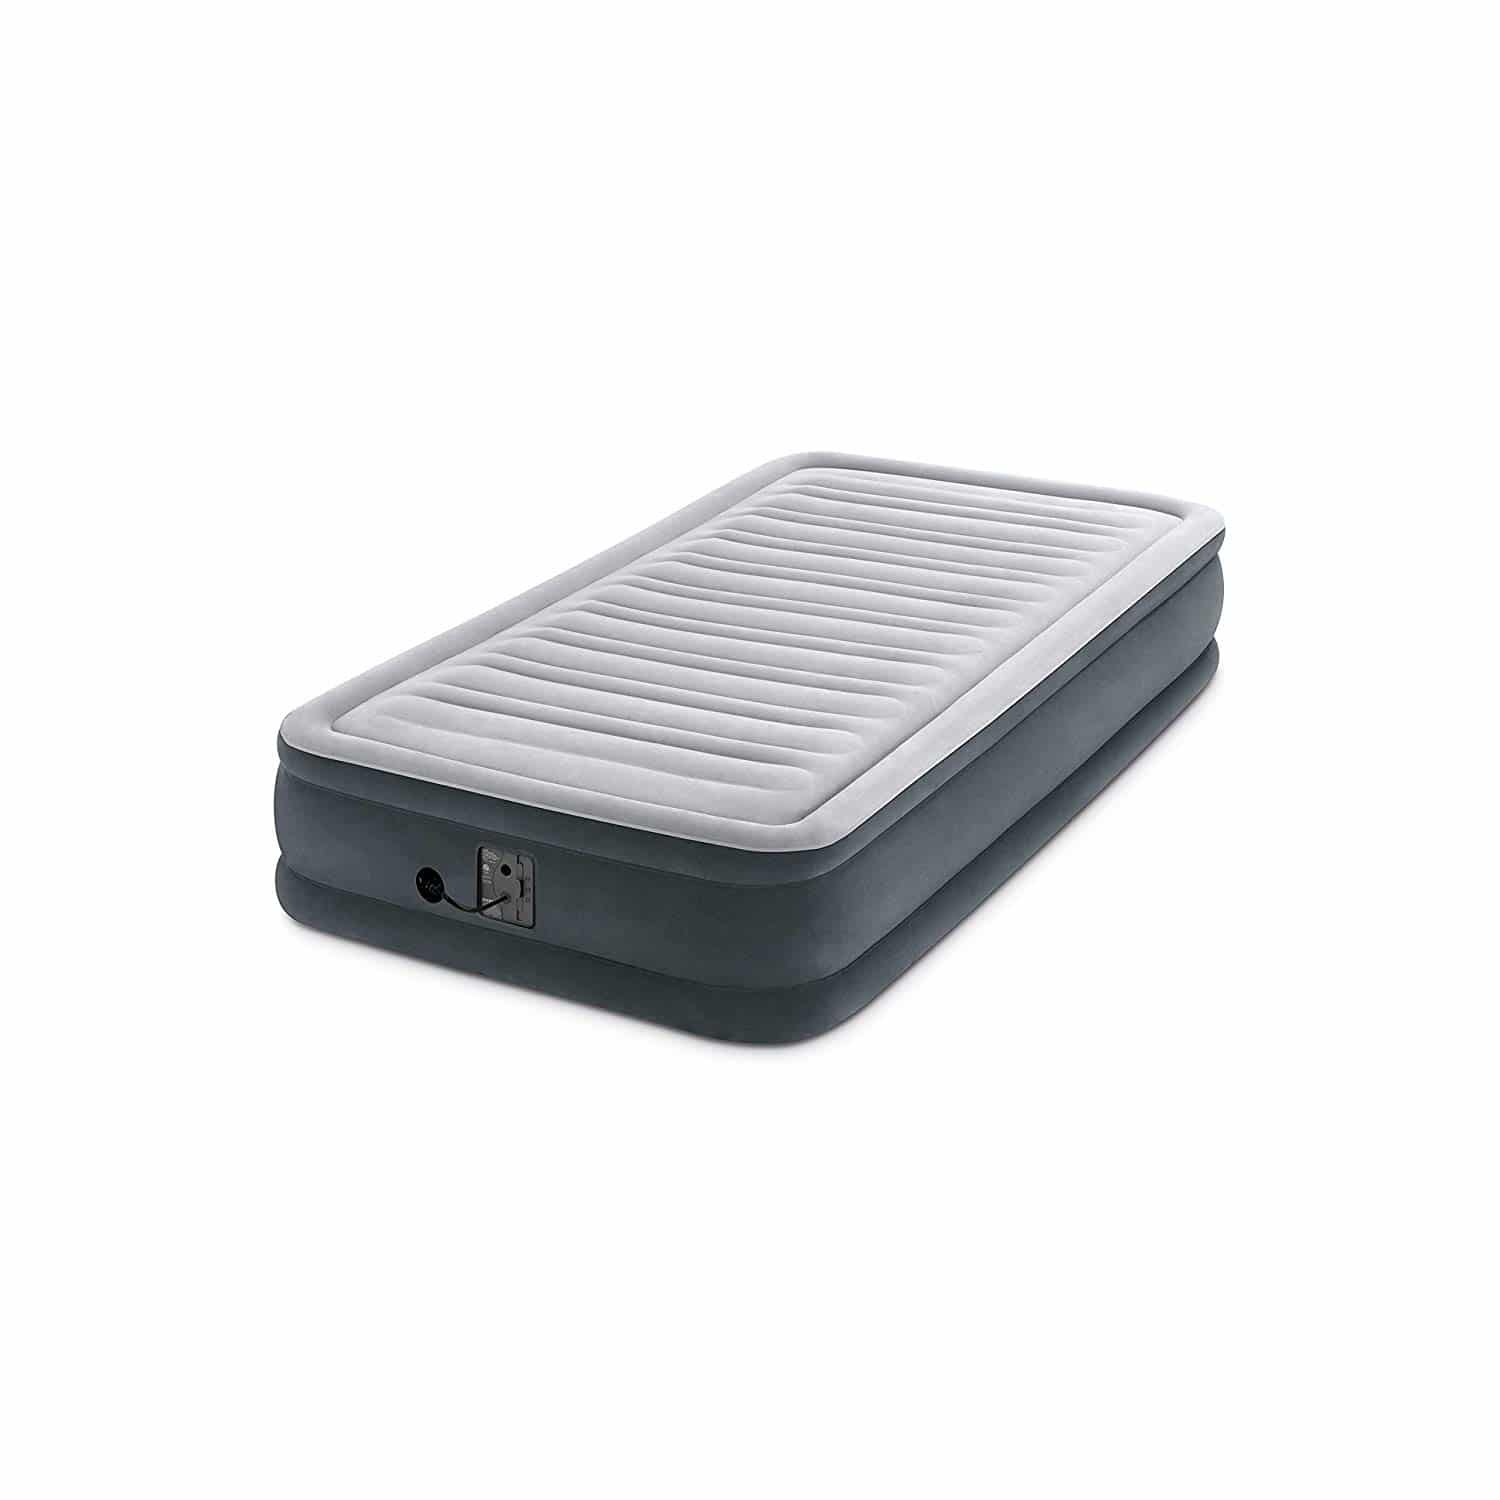 Intex Comfort Plush Mid Rise Dura Beam Airbed with Internal Electric Pump